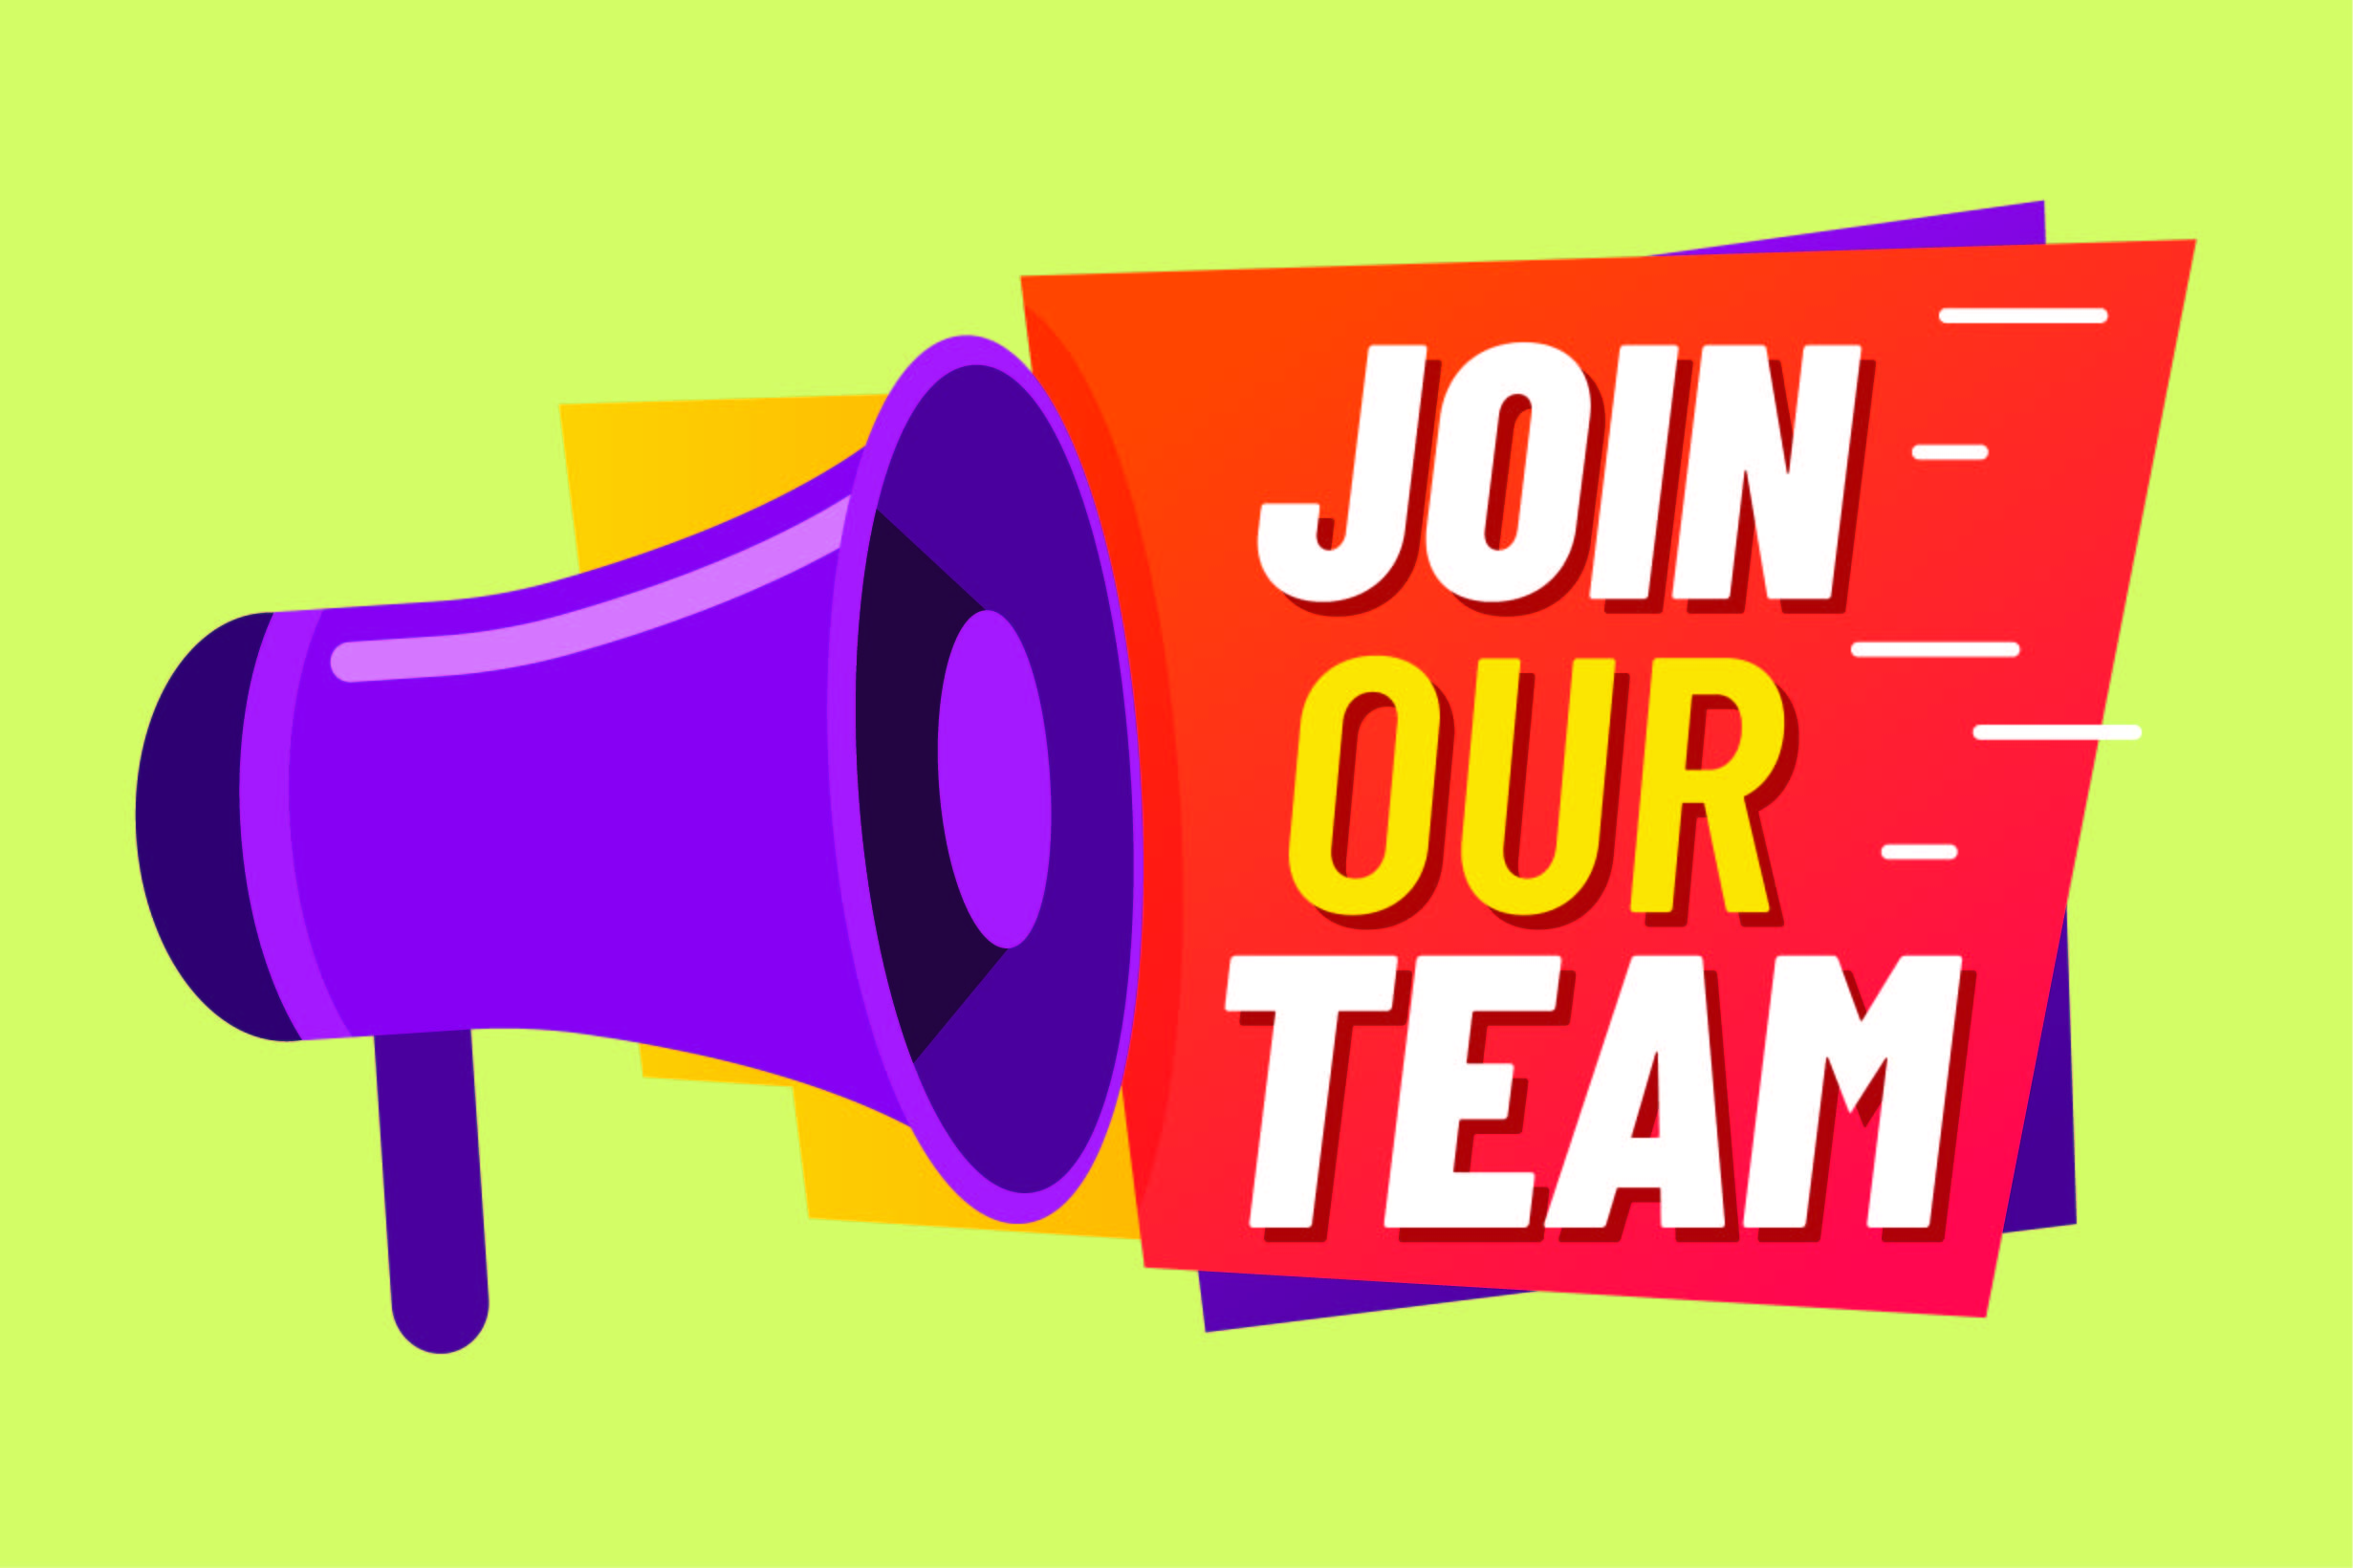 Join our team - telemarketing specialist